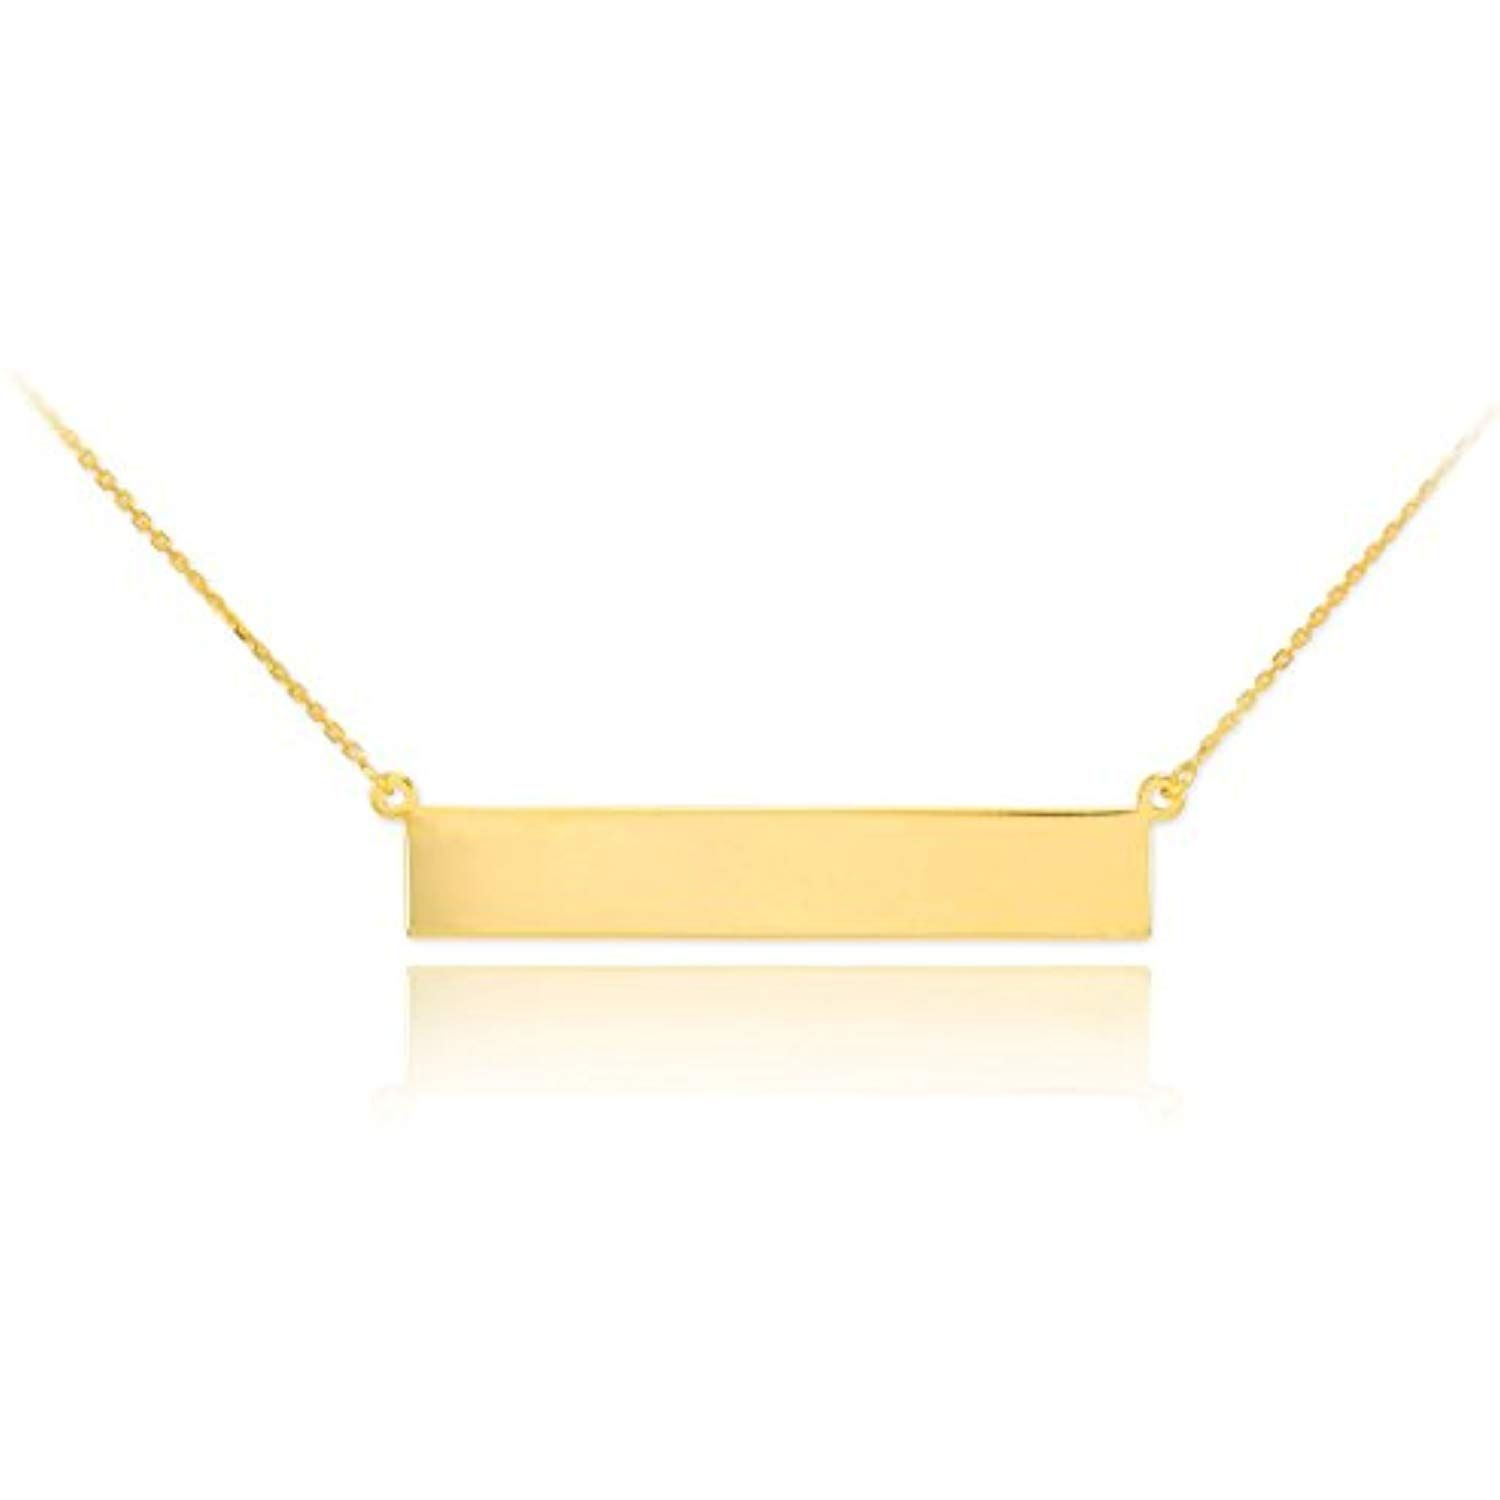 High Polish 14k Yellow Gold Personalized Custom Engravable Bar Necklace Click Image For More Details T Engraved Bar Necklace Engraved Necklace Bar Necklace